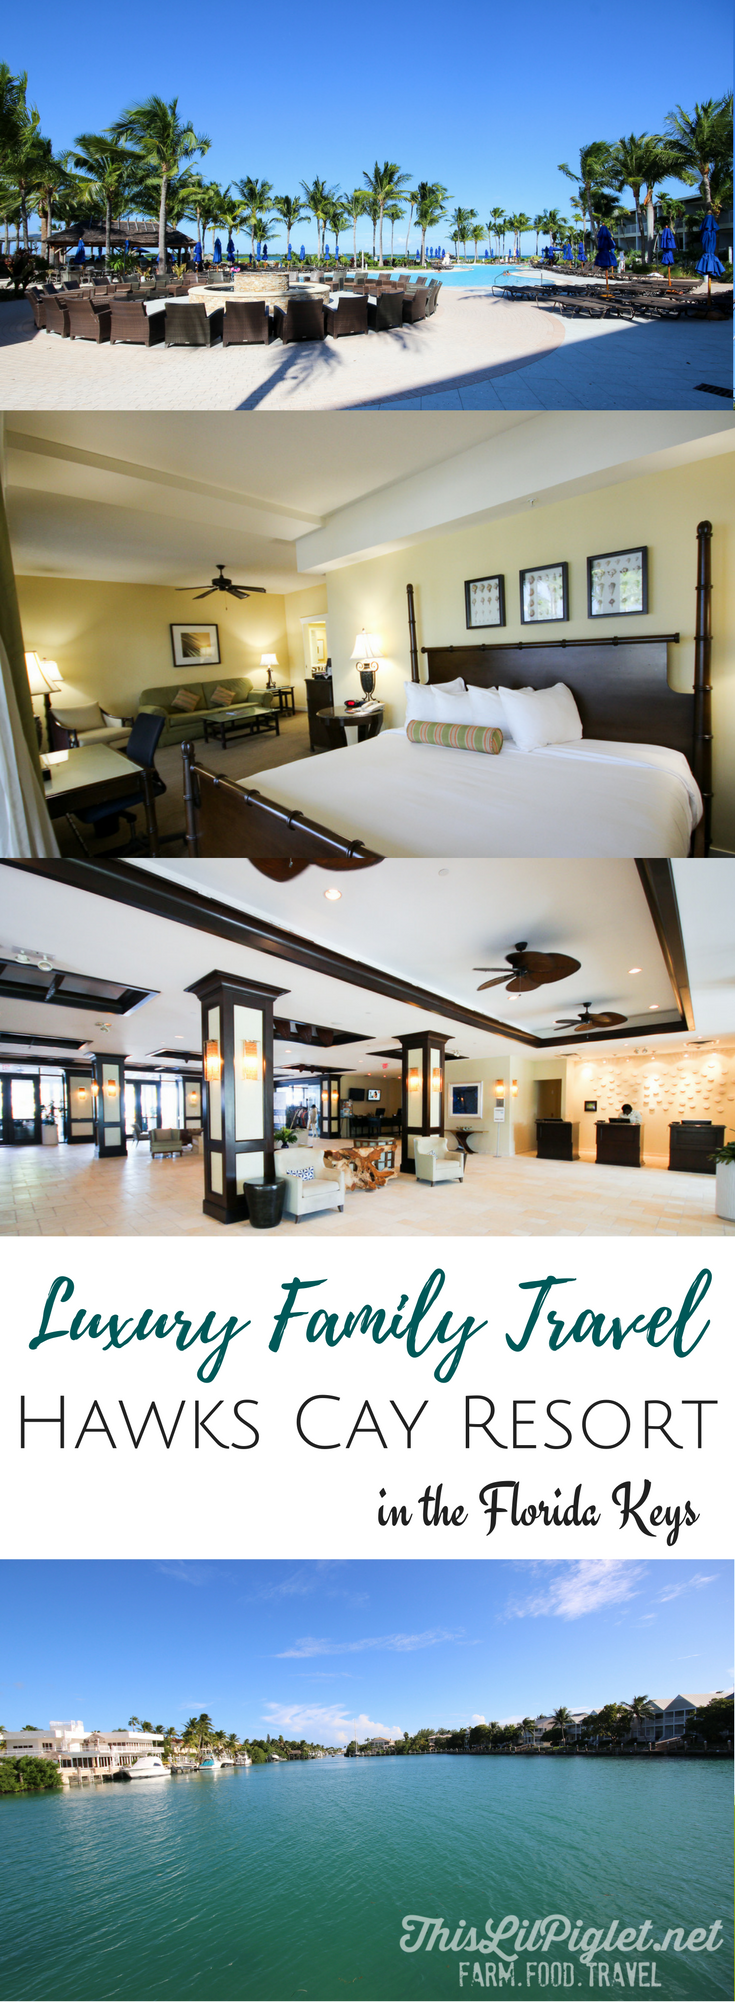 Luxury Family Travel at Hawks Cay Resort in the Florida Keys // via @thislilpiglet